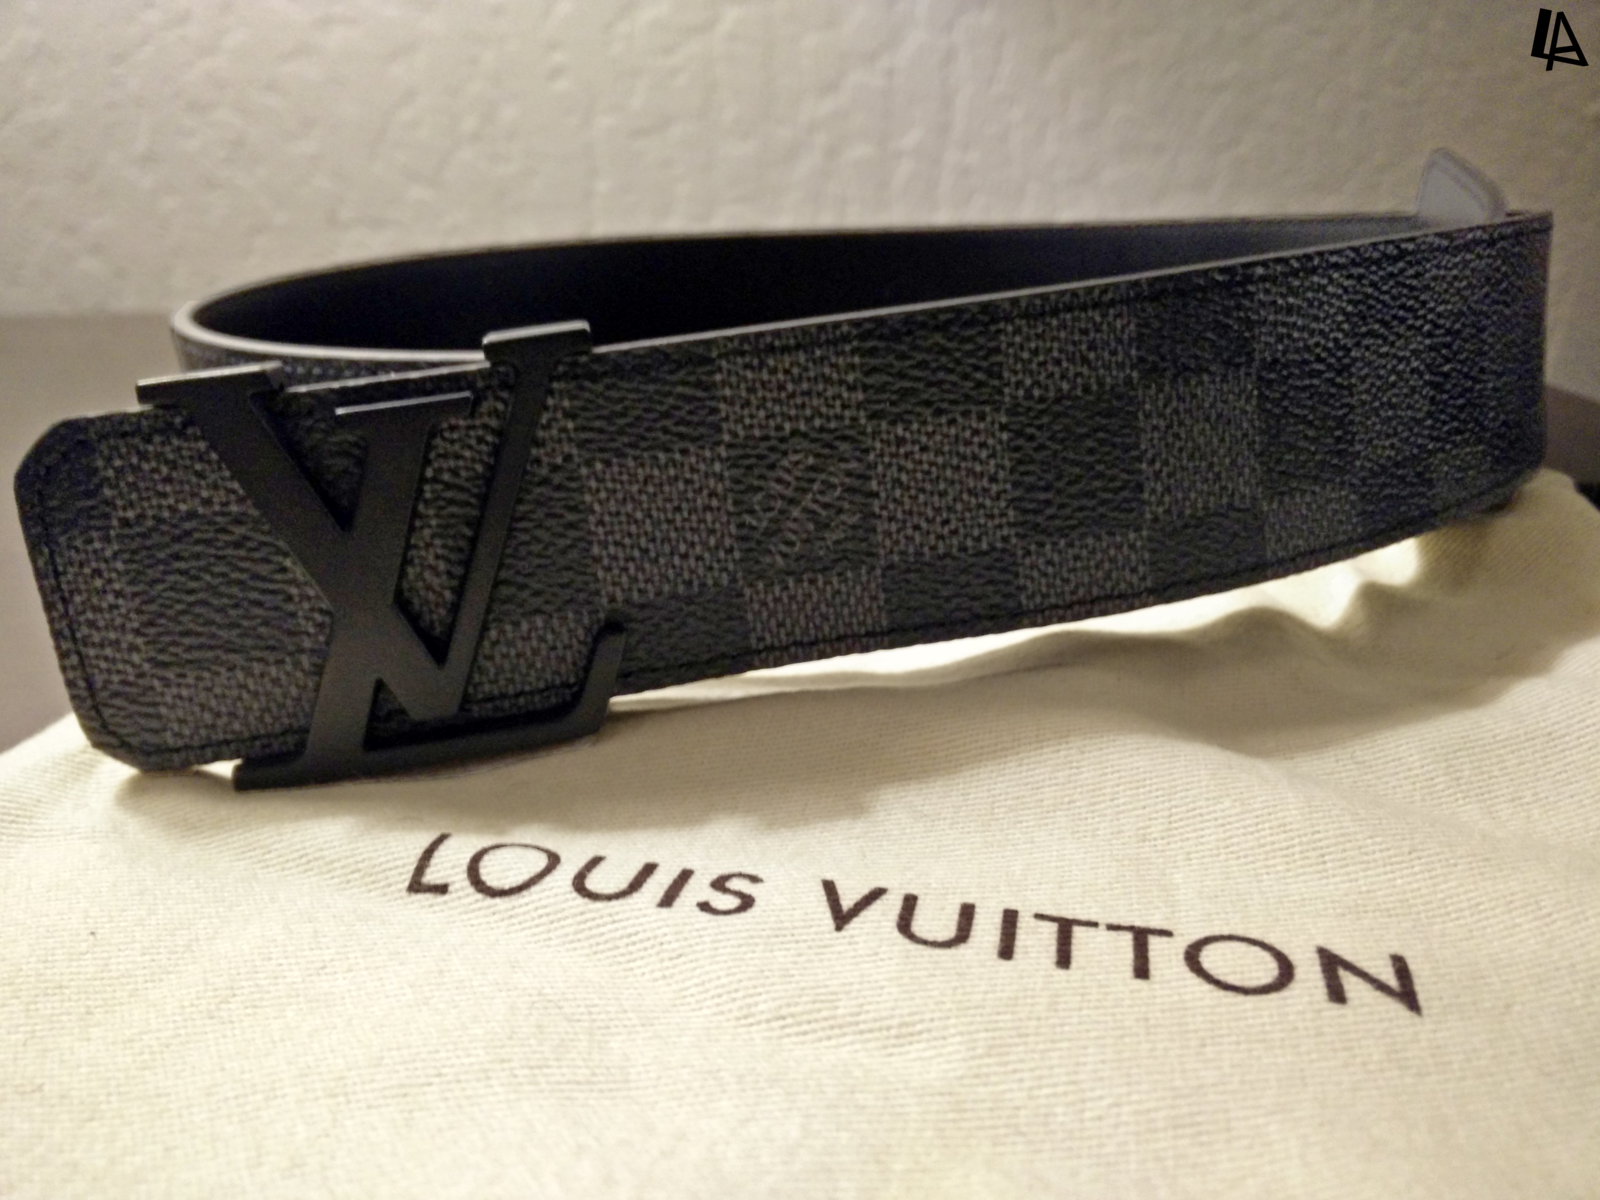 814fd92b4a6a Imgnew 20170217 174738. Imgnew 20170217 174738. Previous. Louis Vuitton  Damier Graphite Belt M9808 Men s ...